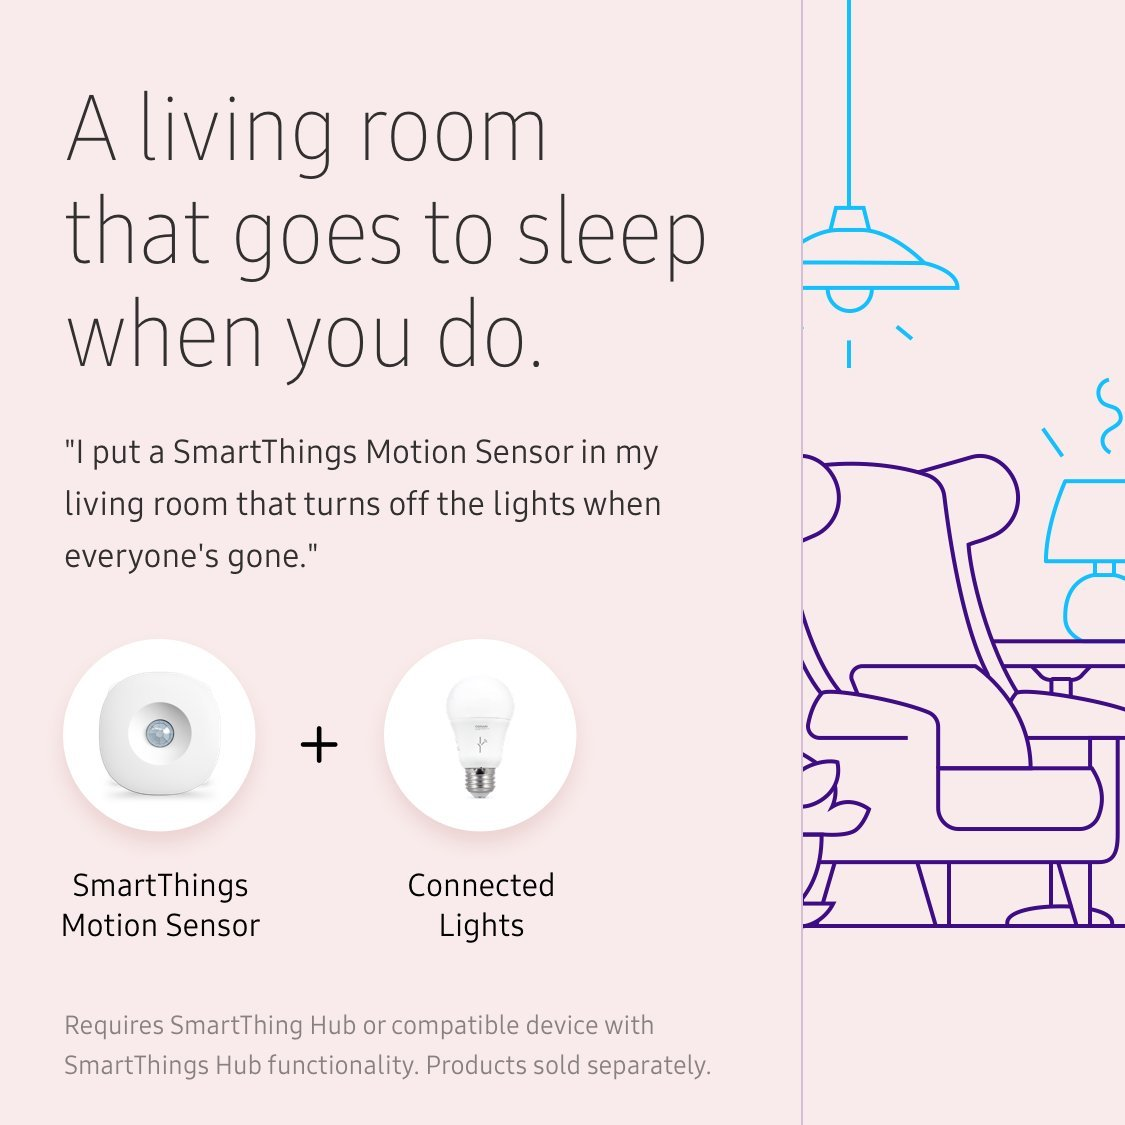 Samsung SmartThings Motion Sensor [GP-U999SJVLBAA] with Slim Design and Optional Automated Alerts - Alexa Compatible - White by Samsung (Image #6)